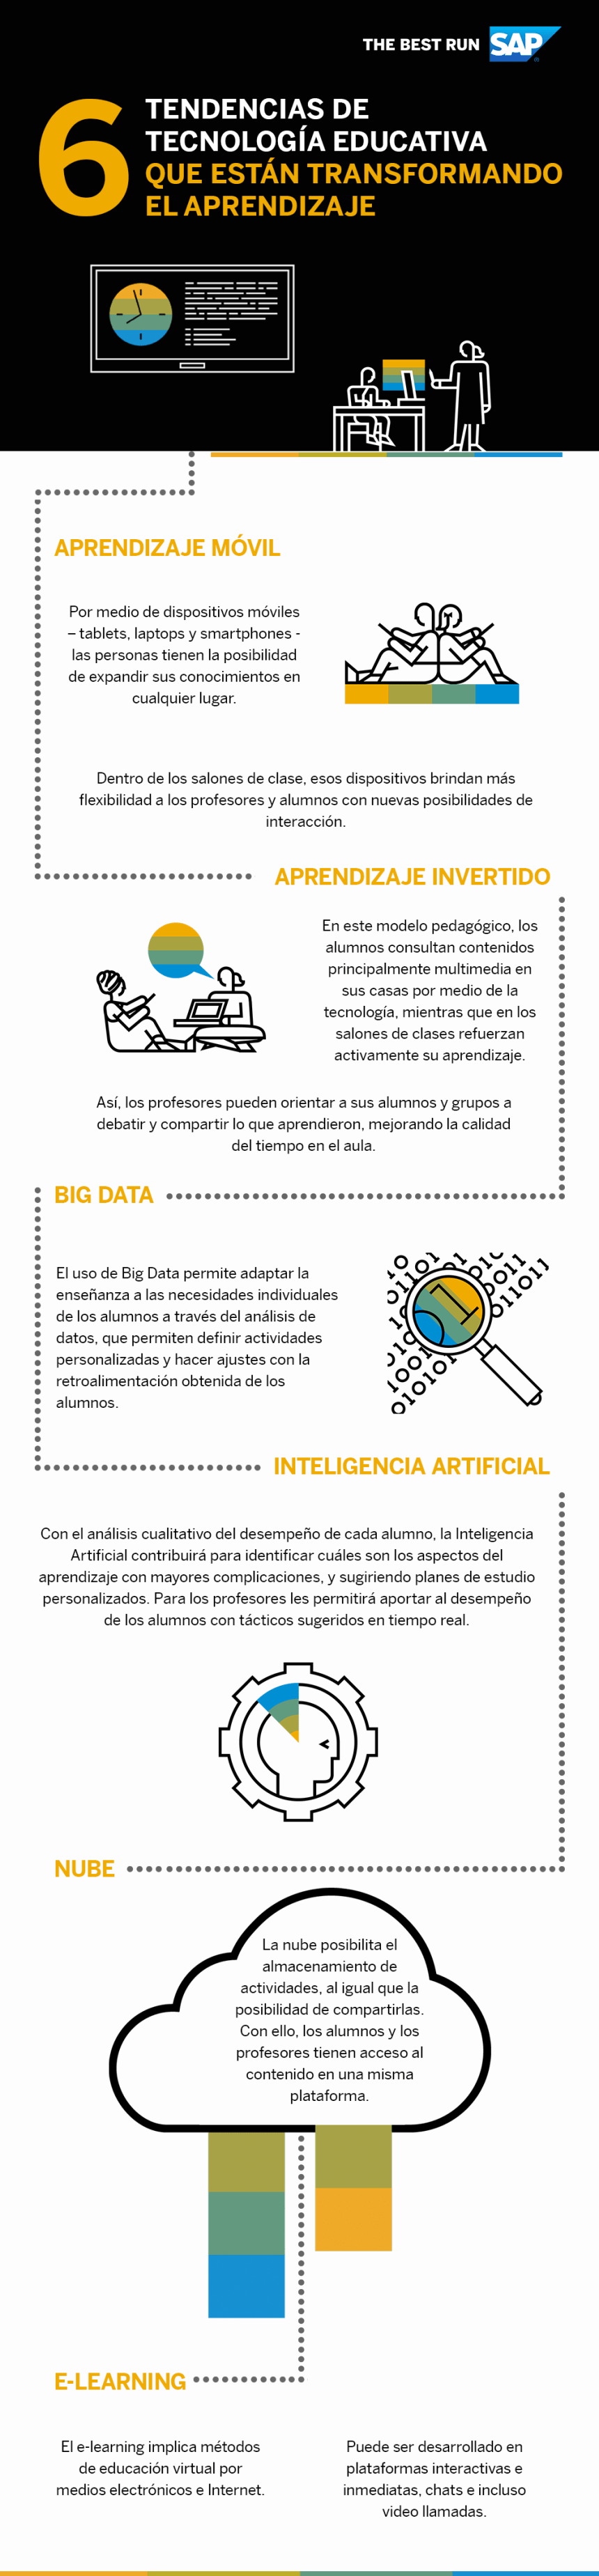 6 tendencias en Tecnología Educativa